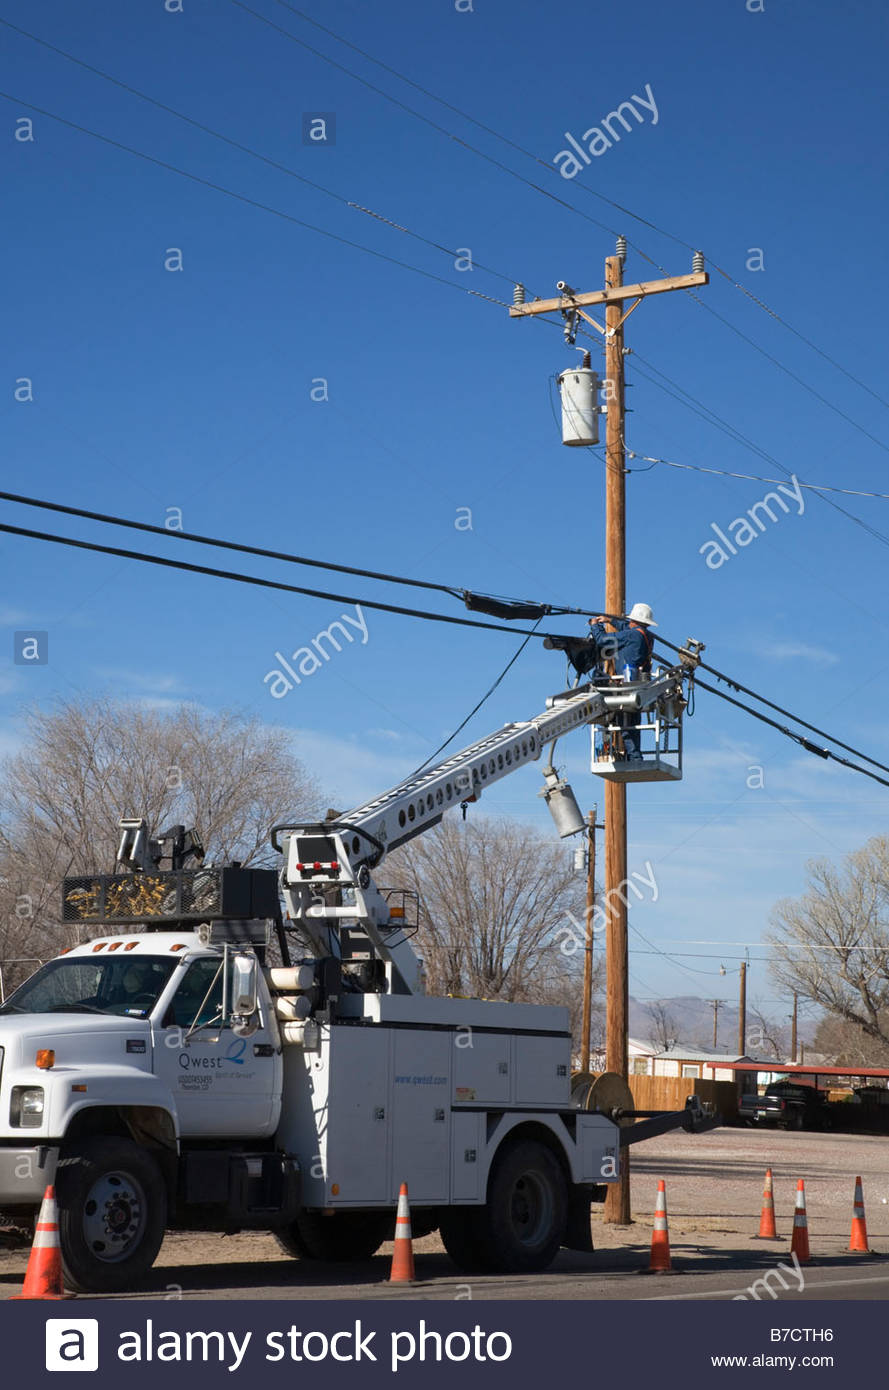 lineman-working-on-telephone-line-from-bucket-on-truck-lift-B7CTH6.jpg